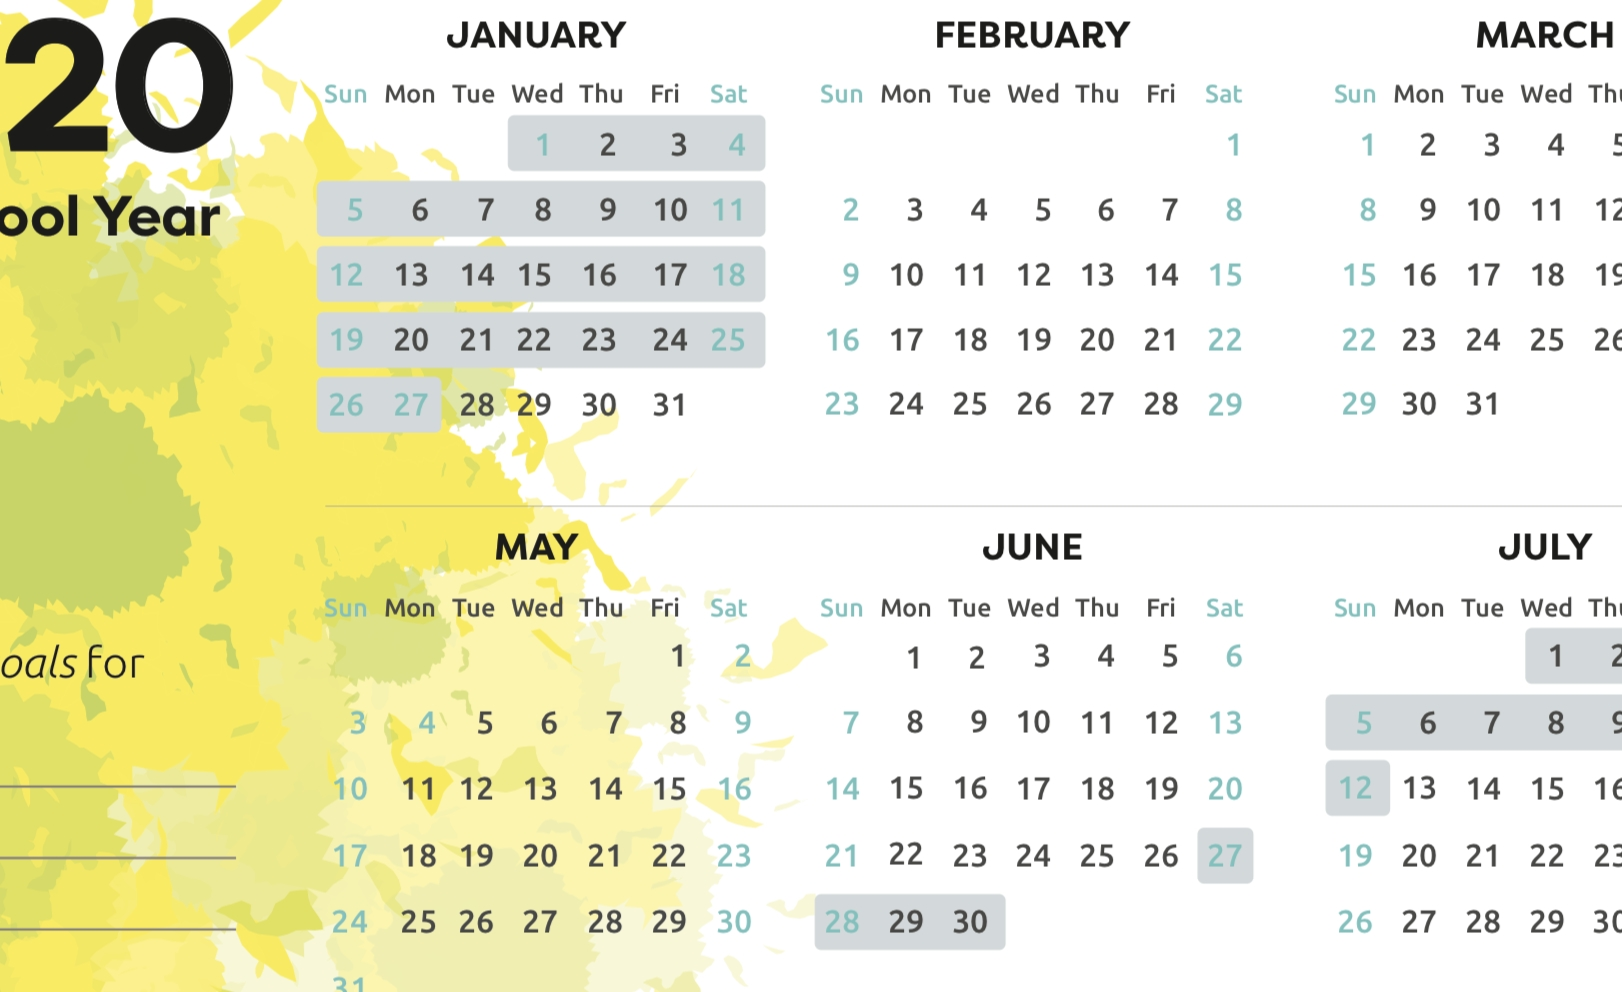 Printable School Holiday Calendar 2020 - School Direct-2020 Calenderwa School Holidays Printable